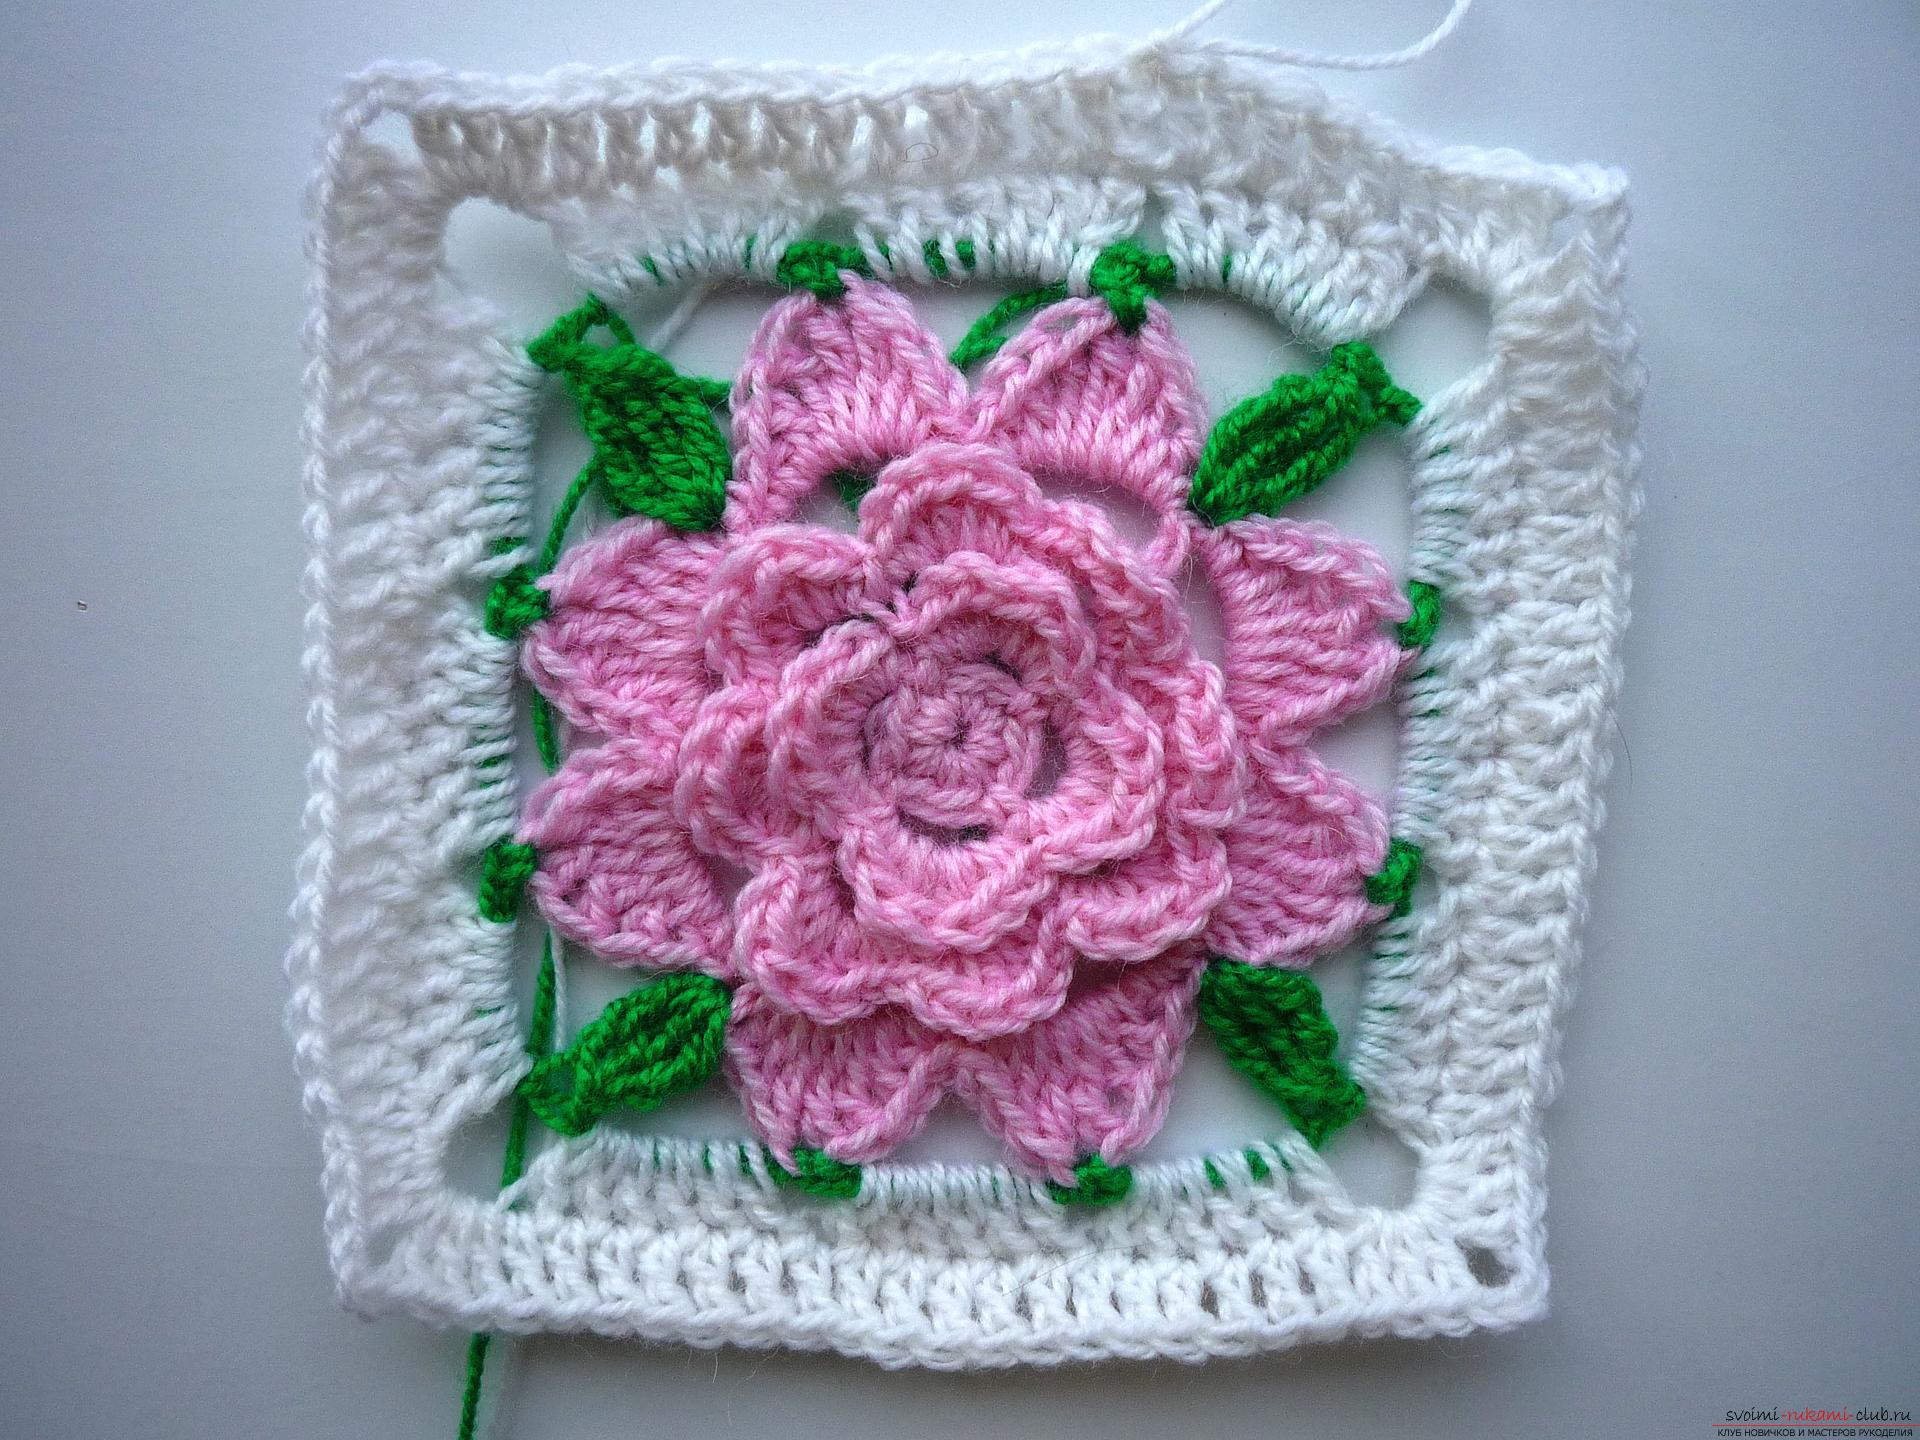 This crochet masterclass contains a crochet color scheme for the plaid .. Photo # 21